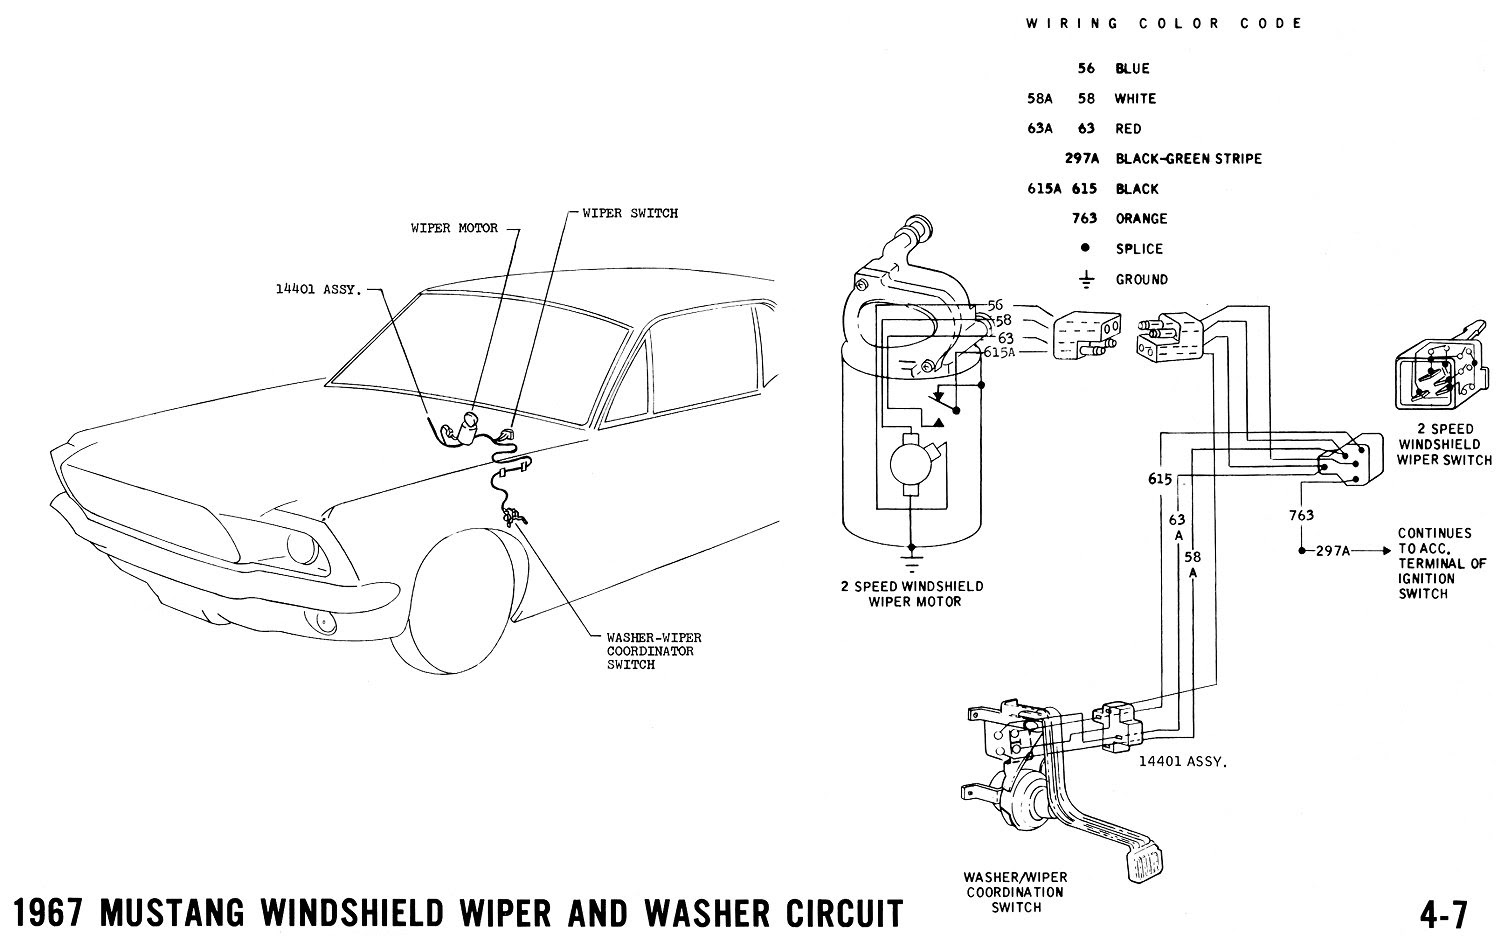 Diagram 1966 Mustang Wiper Wiring Diagram Full Version Hd Quality Wiring Diagram Tami Yti Fr